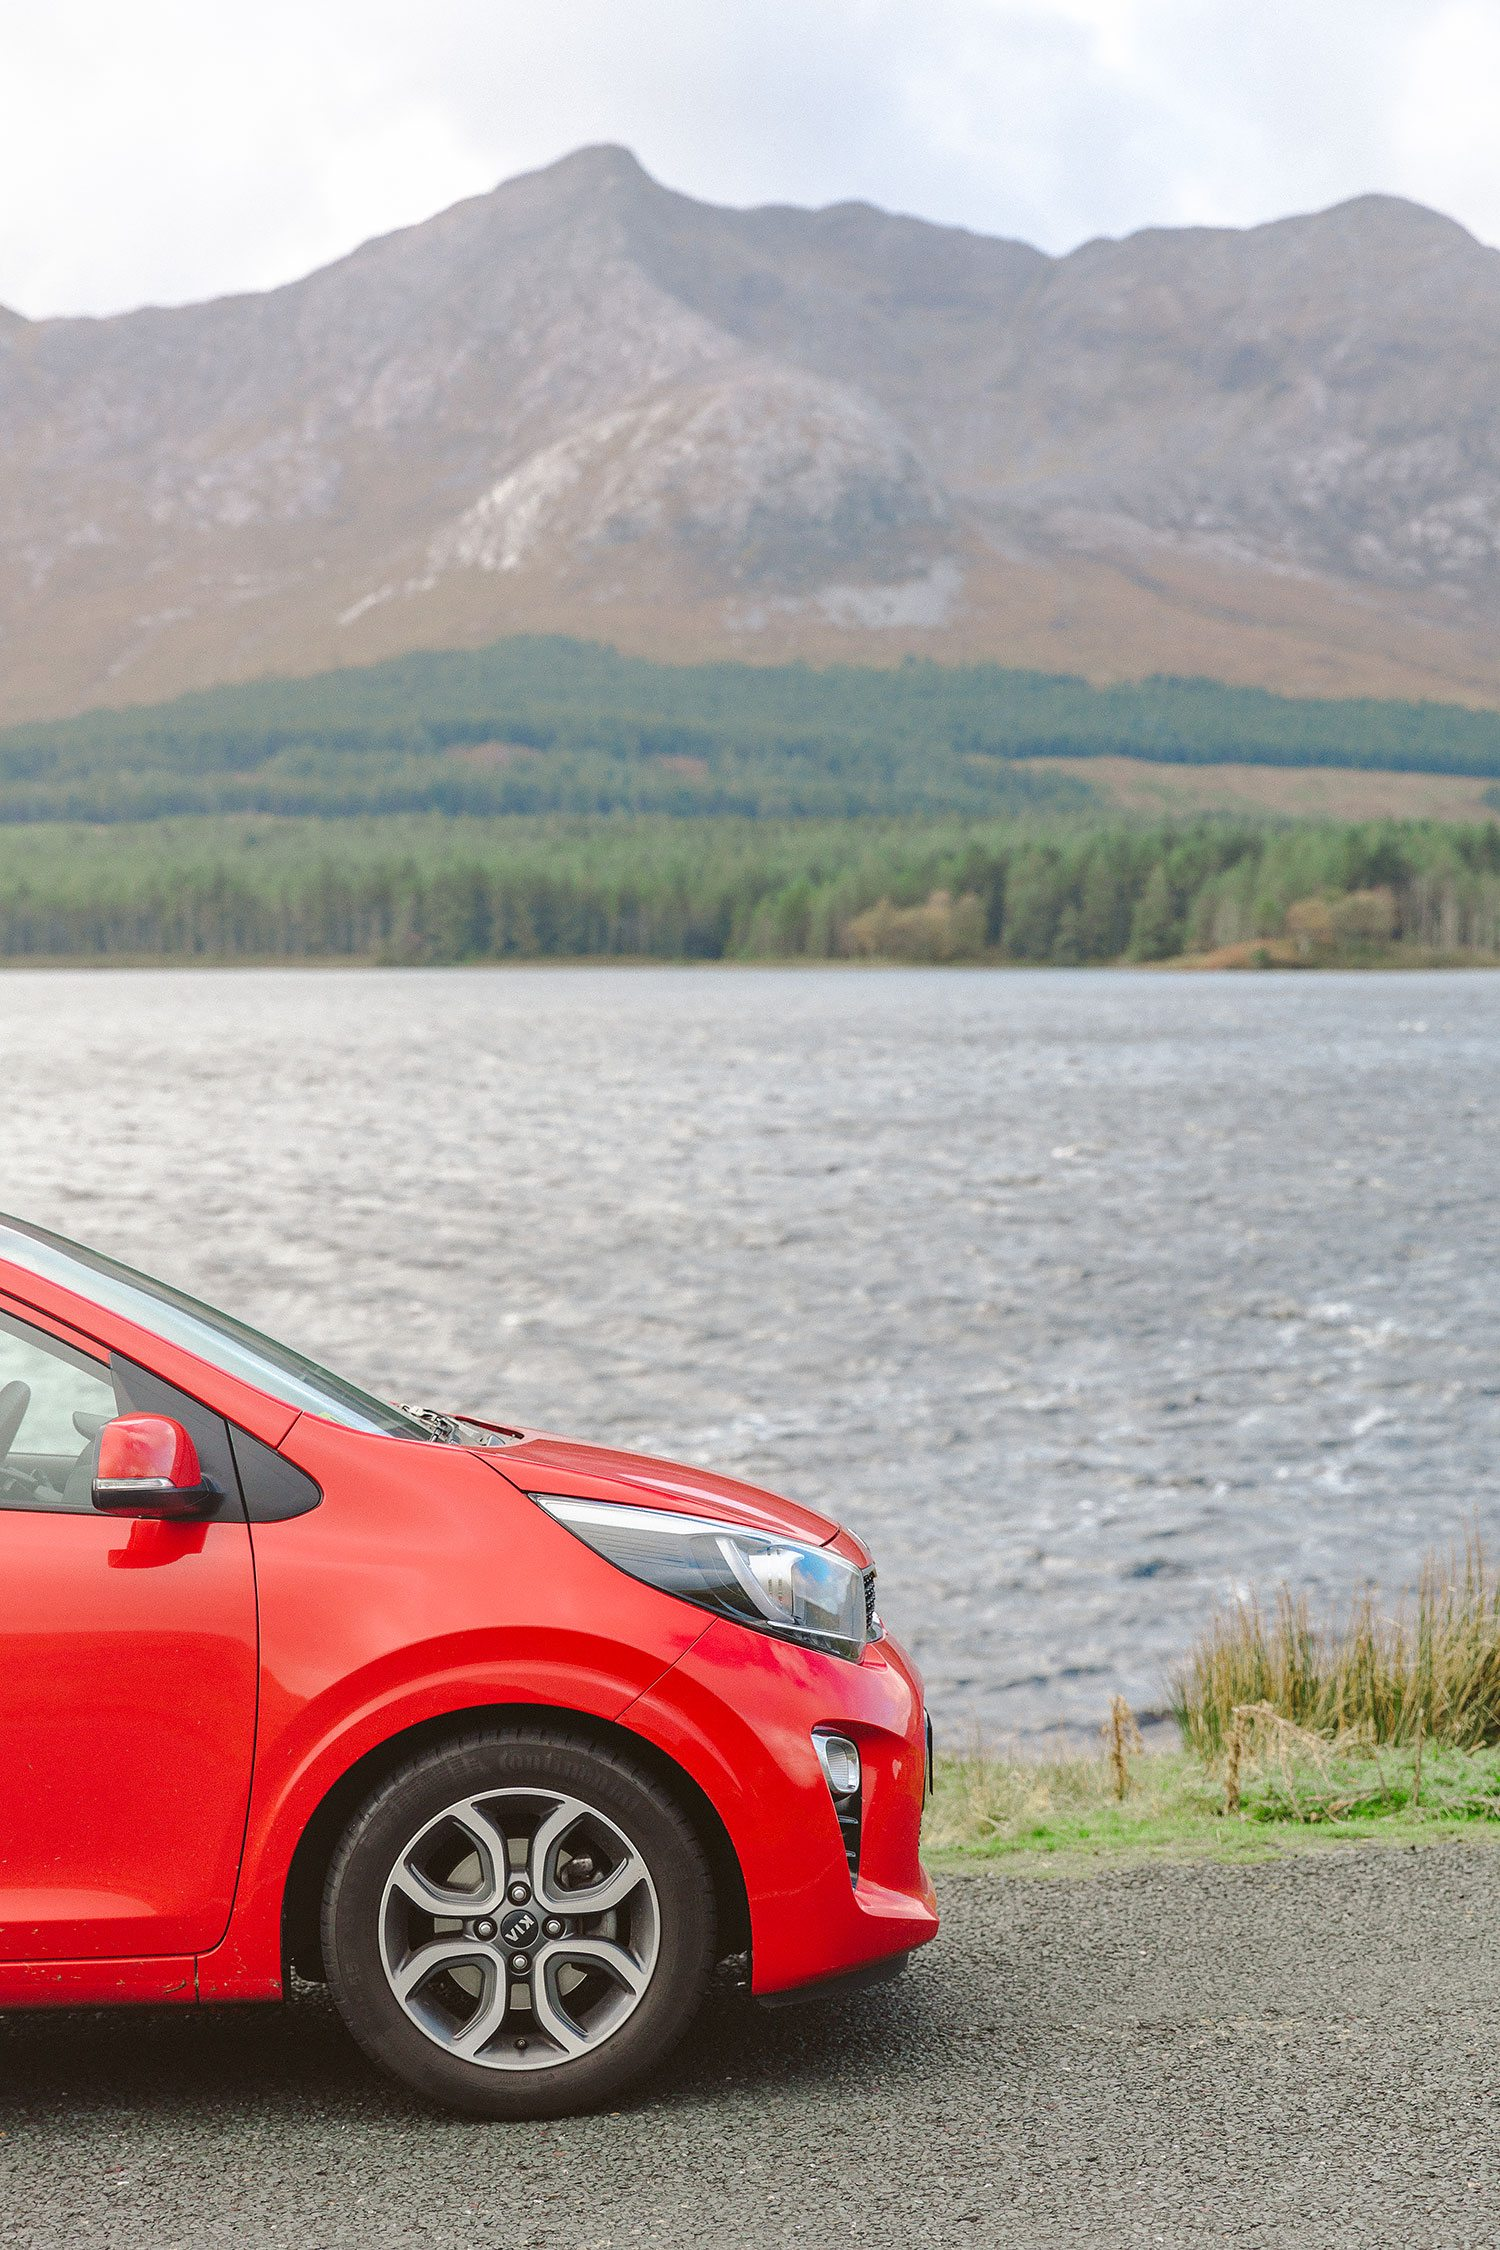 Renting a Car in Ireland